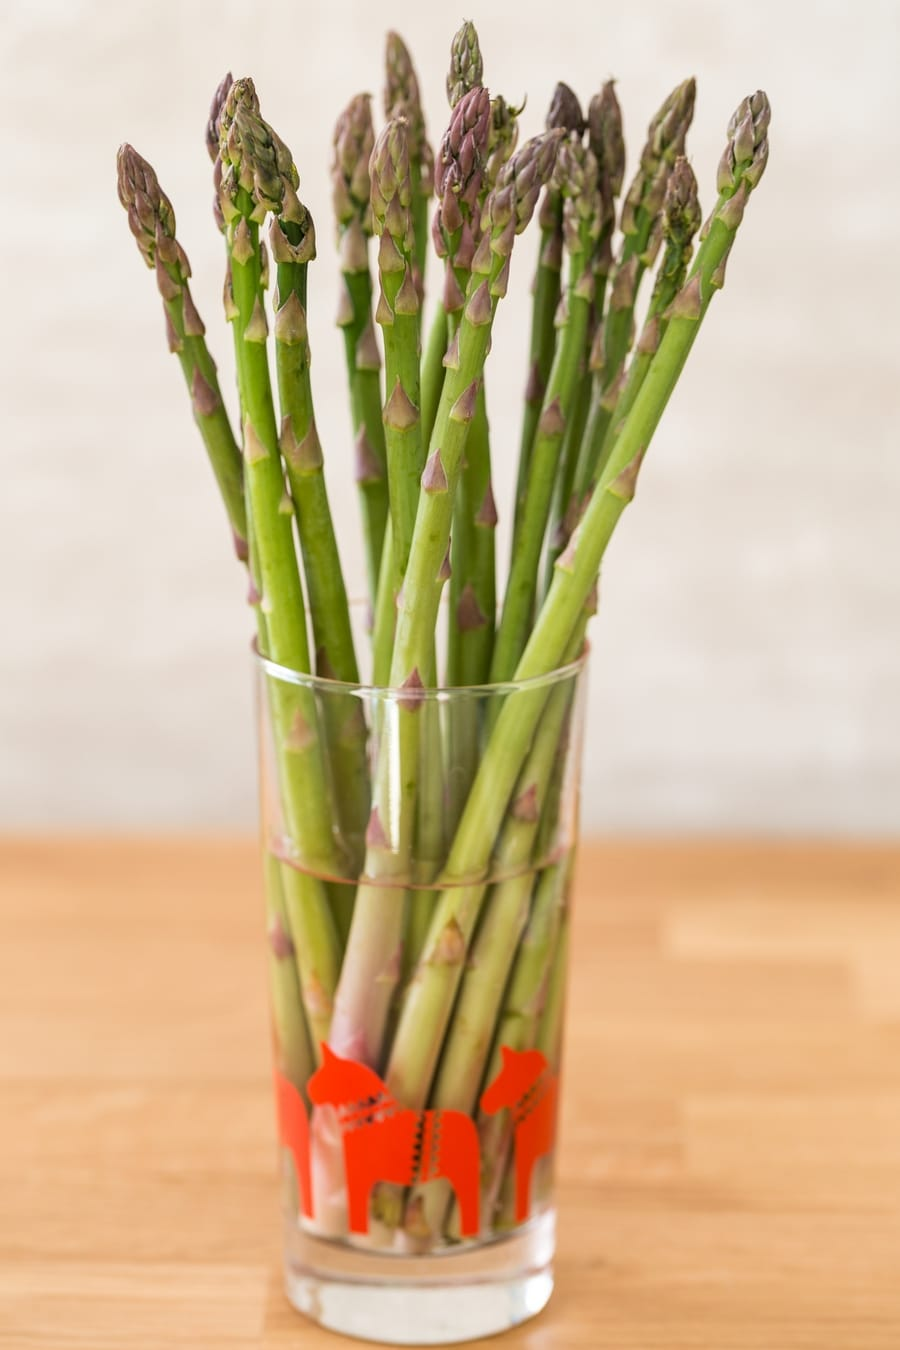 Bunch of green asparagus ina glass of water for longer keeping.